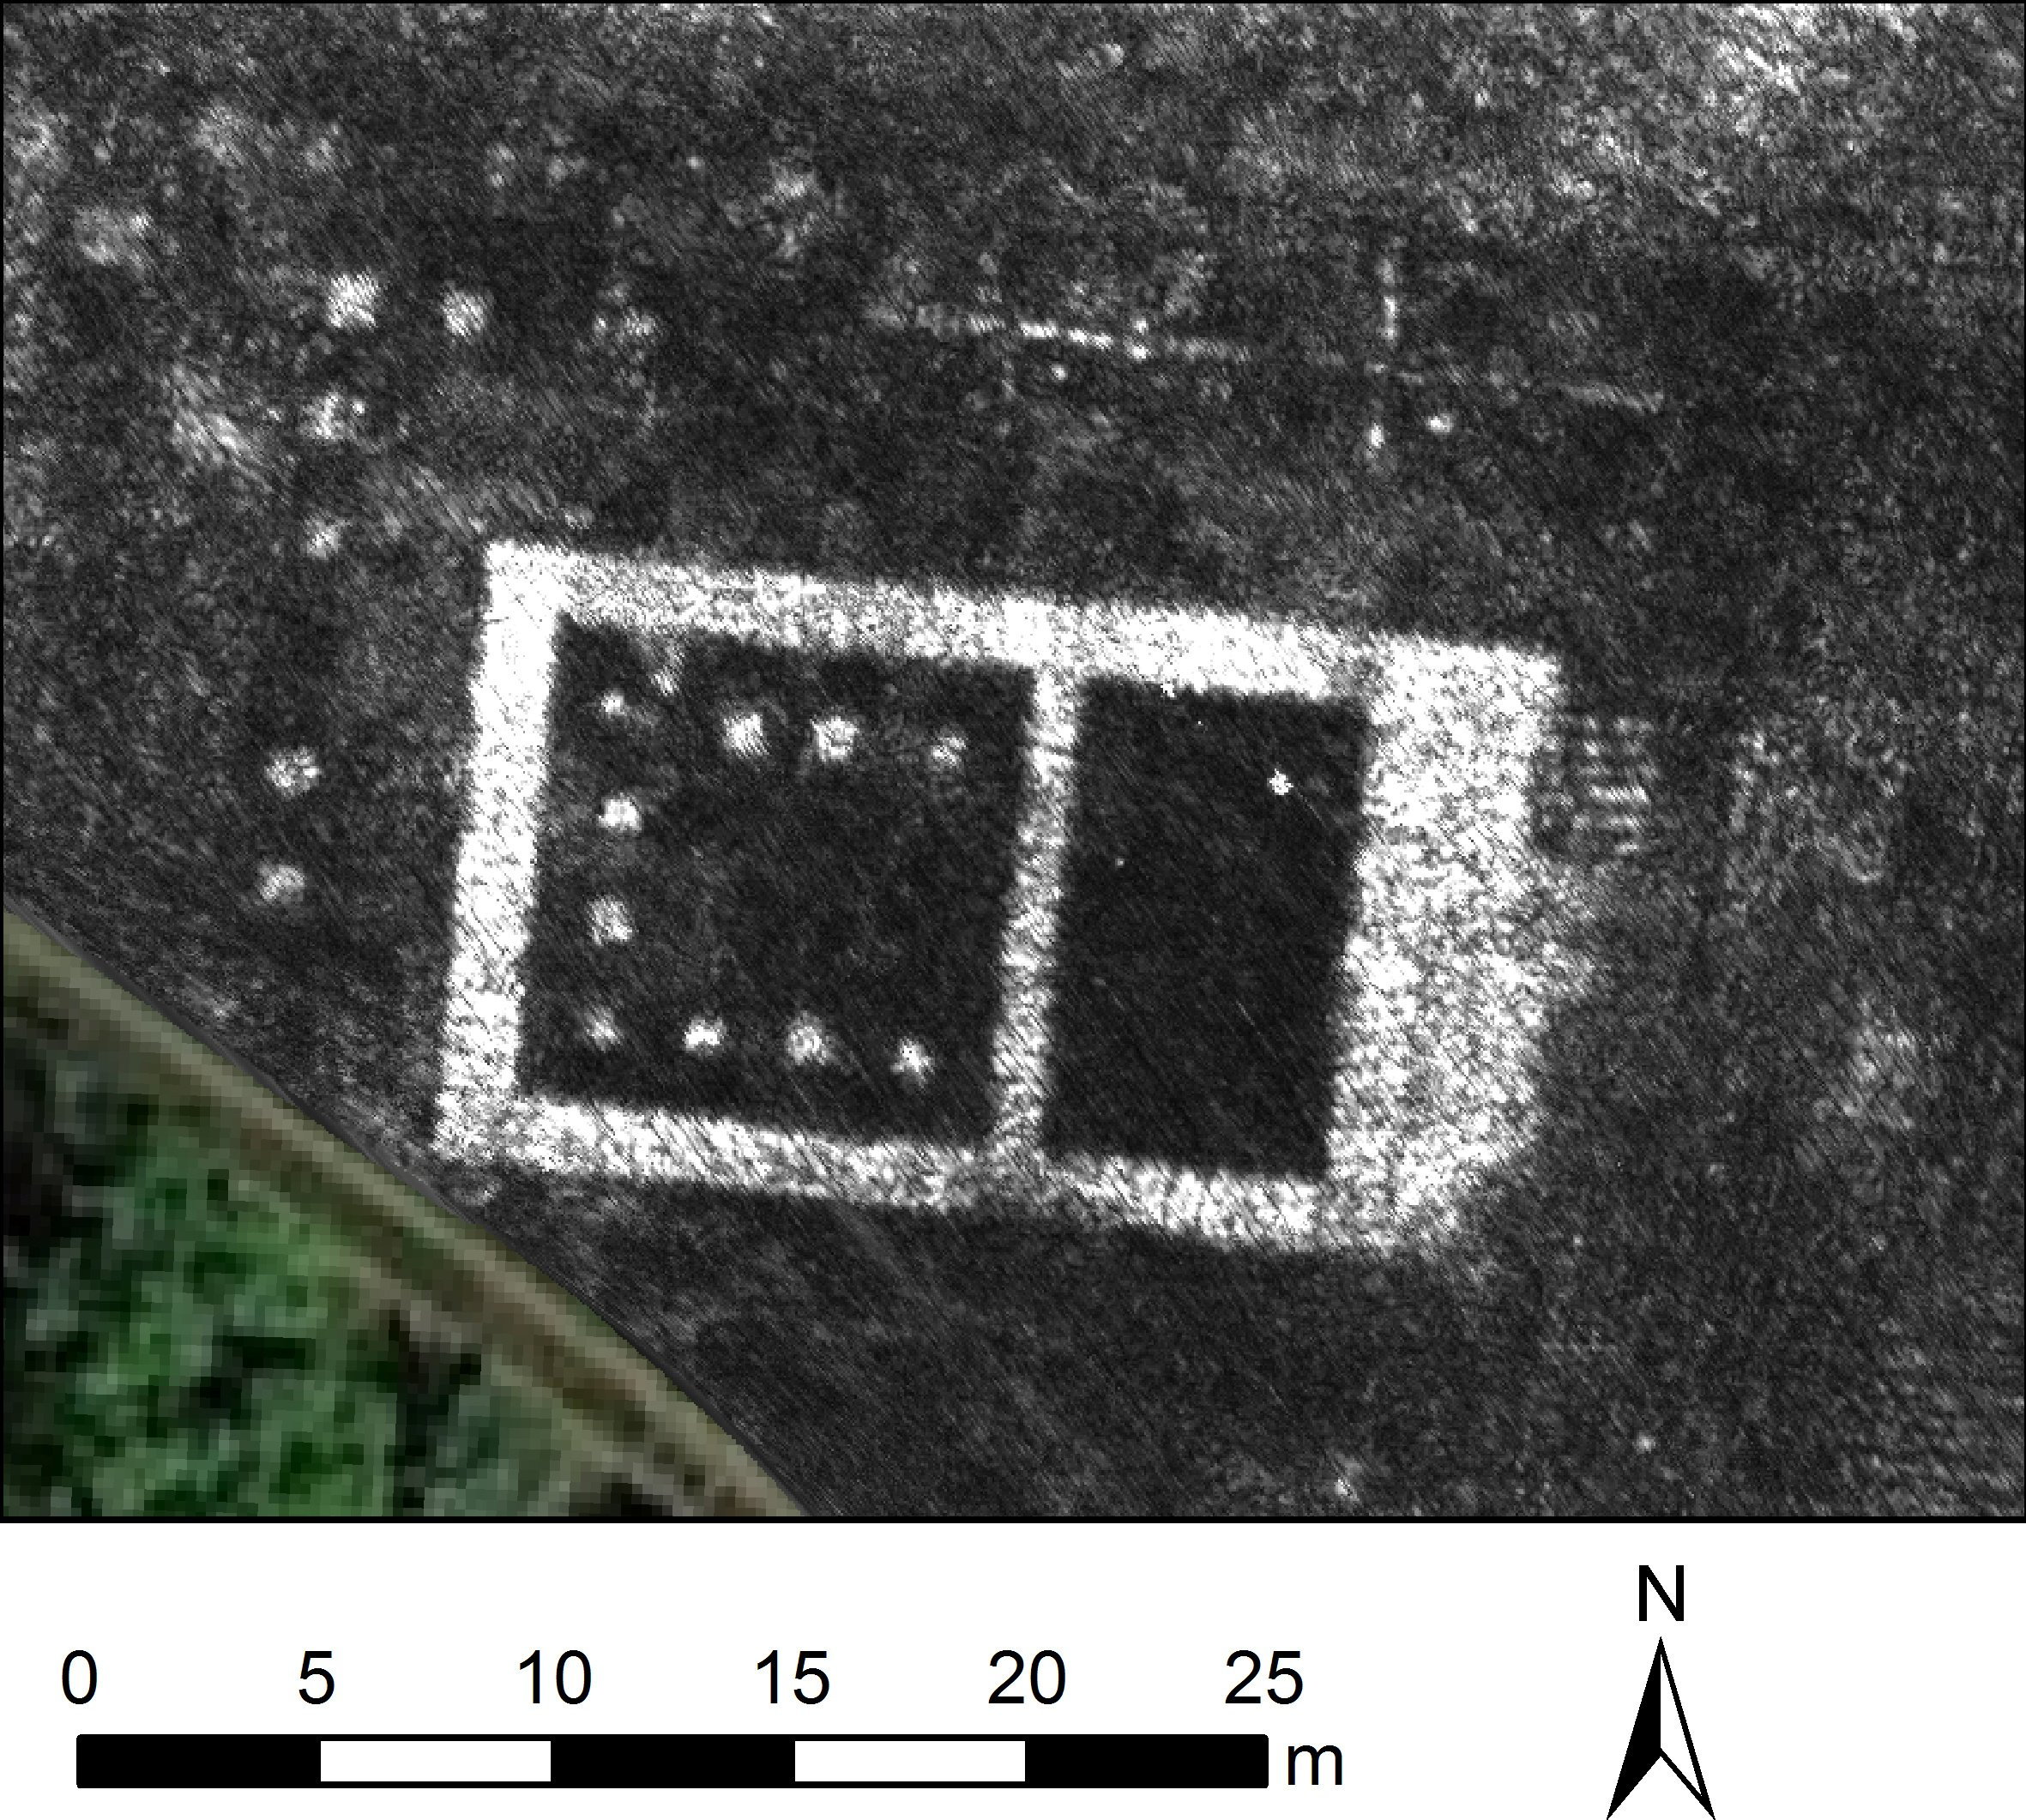 A slice of Ground Penetrating Radar (GPR) data from the ancient Roman city of Falerii Novi in Italy reveals the outlines of the town's buildings (University of Cambridge handout photo via REUTERS)